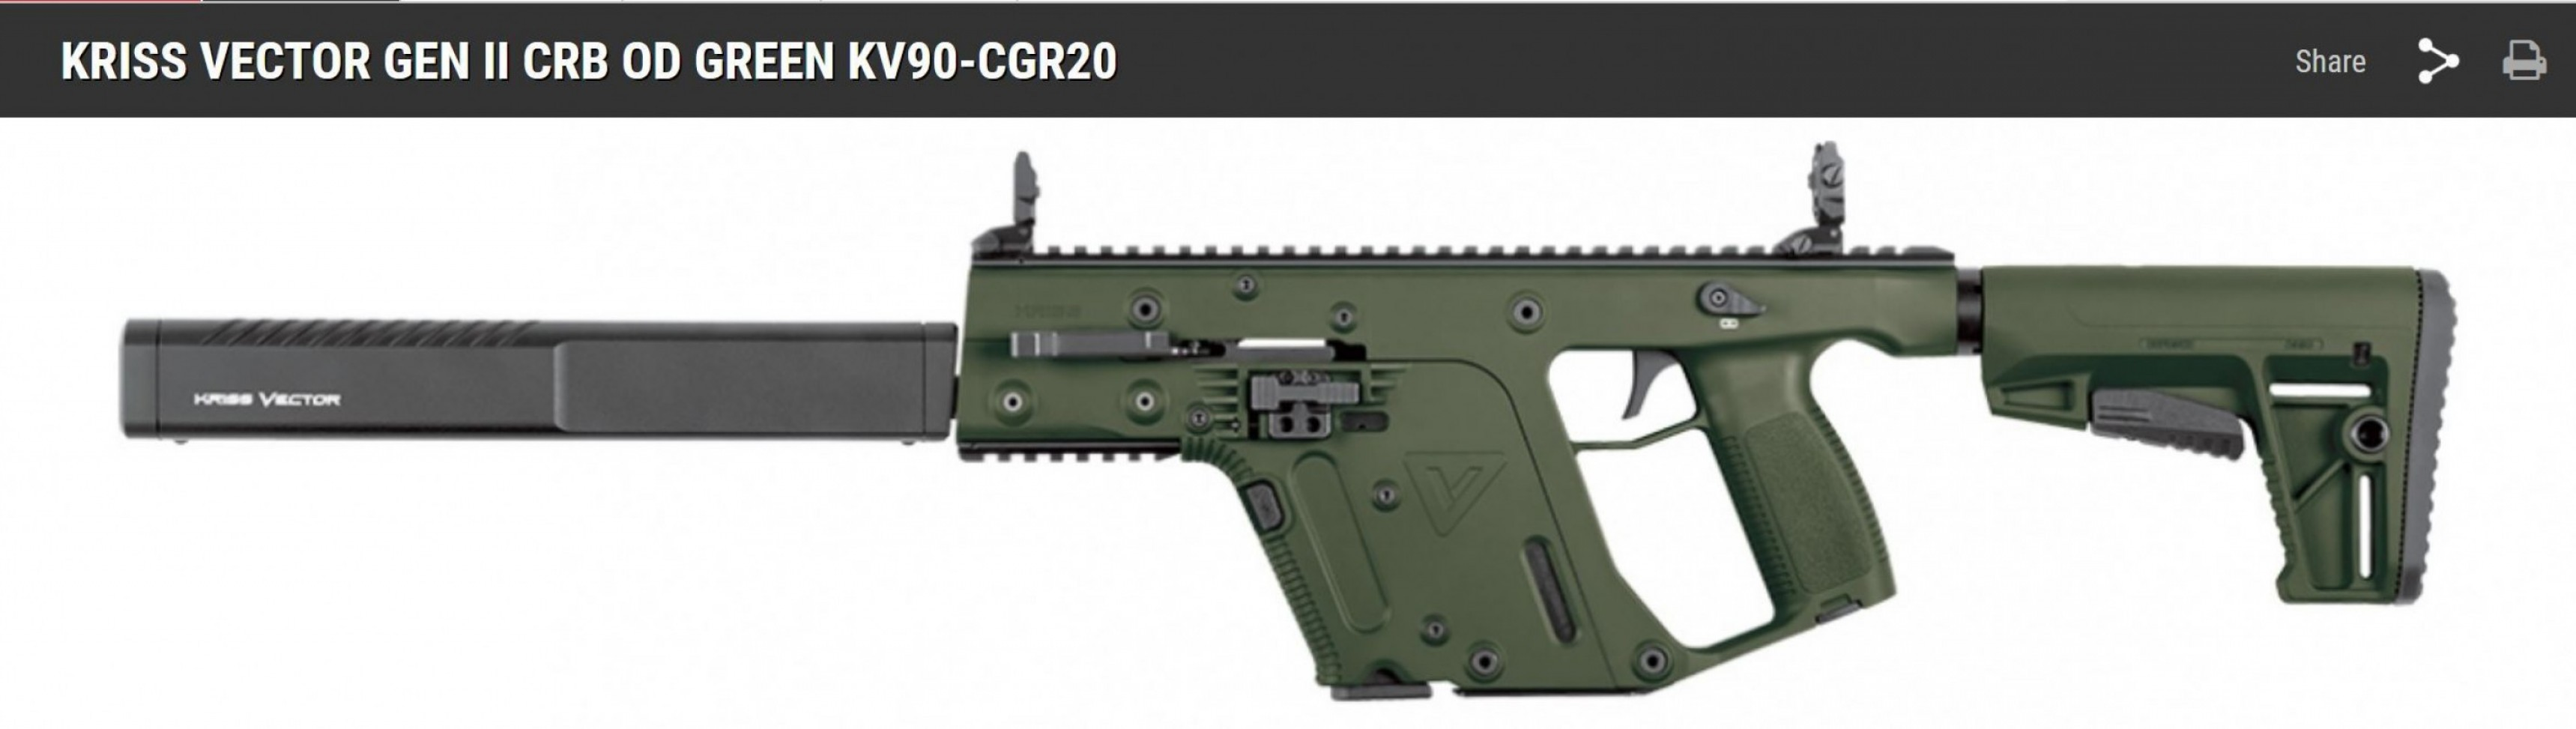 Kriss Vector Pistol Genii: Kriss Vector Crb And Pistols With Braces